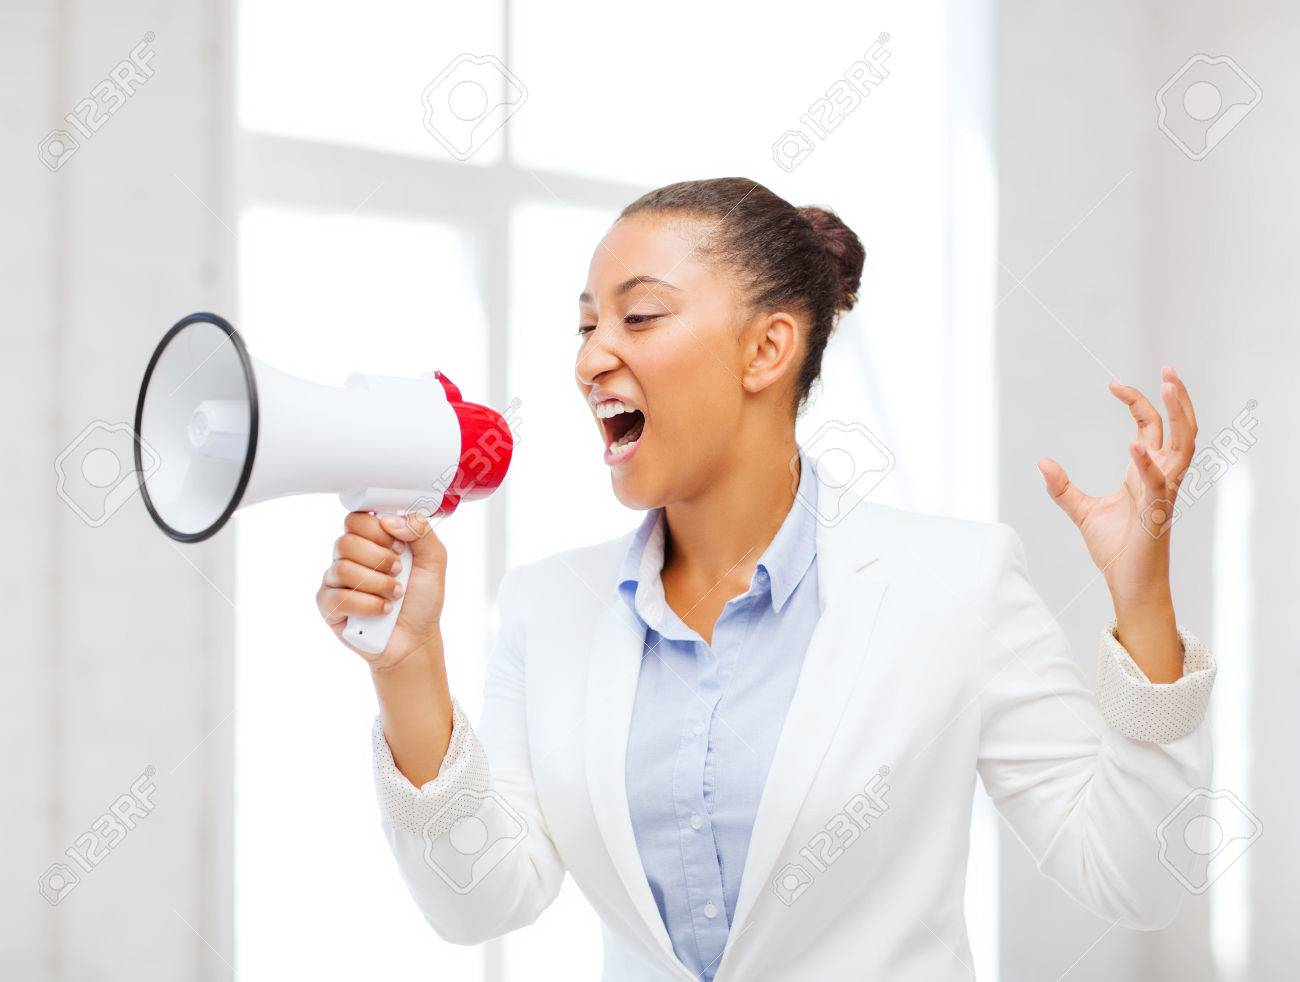 business and communication bad boss concept strict stock photo business and communication bad boss concept strict businessw shouting in megaphone in office